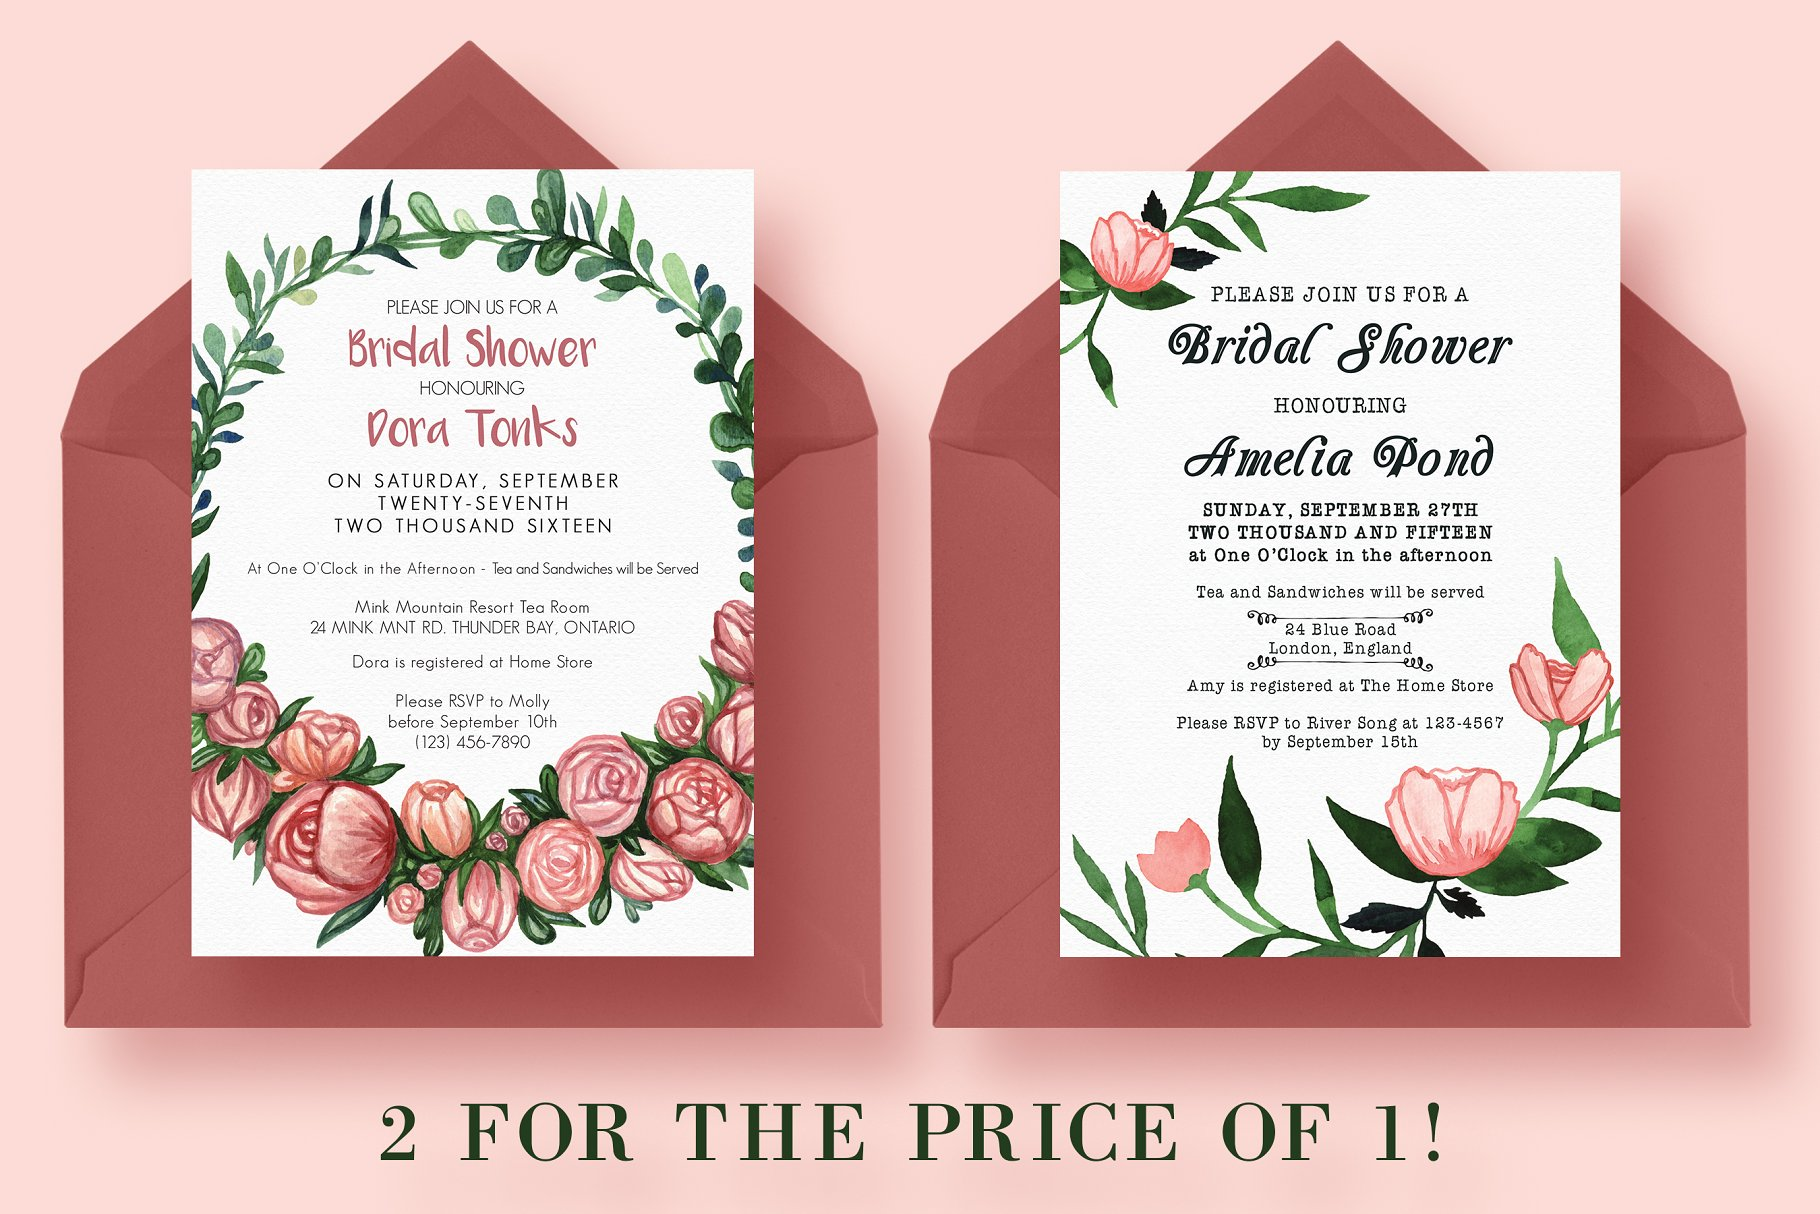 2 FOR 1 Bridal Shower Invitations - Invitation Templates | Creative ...